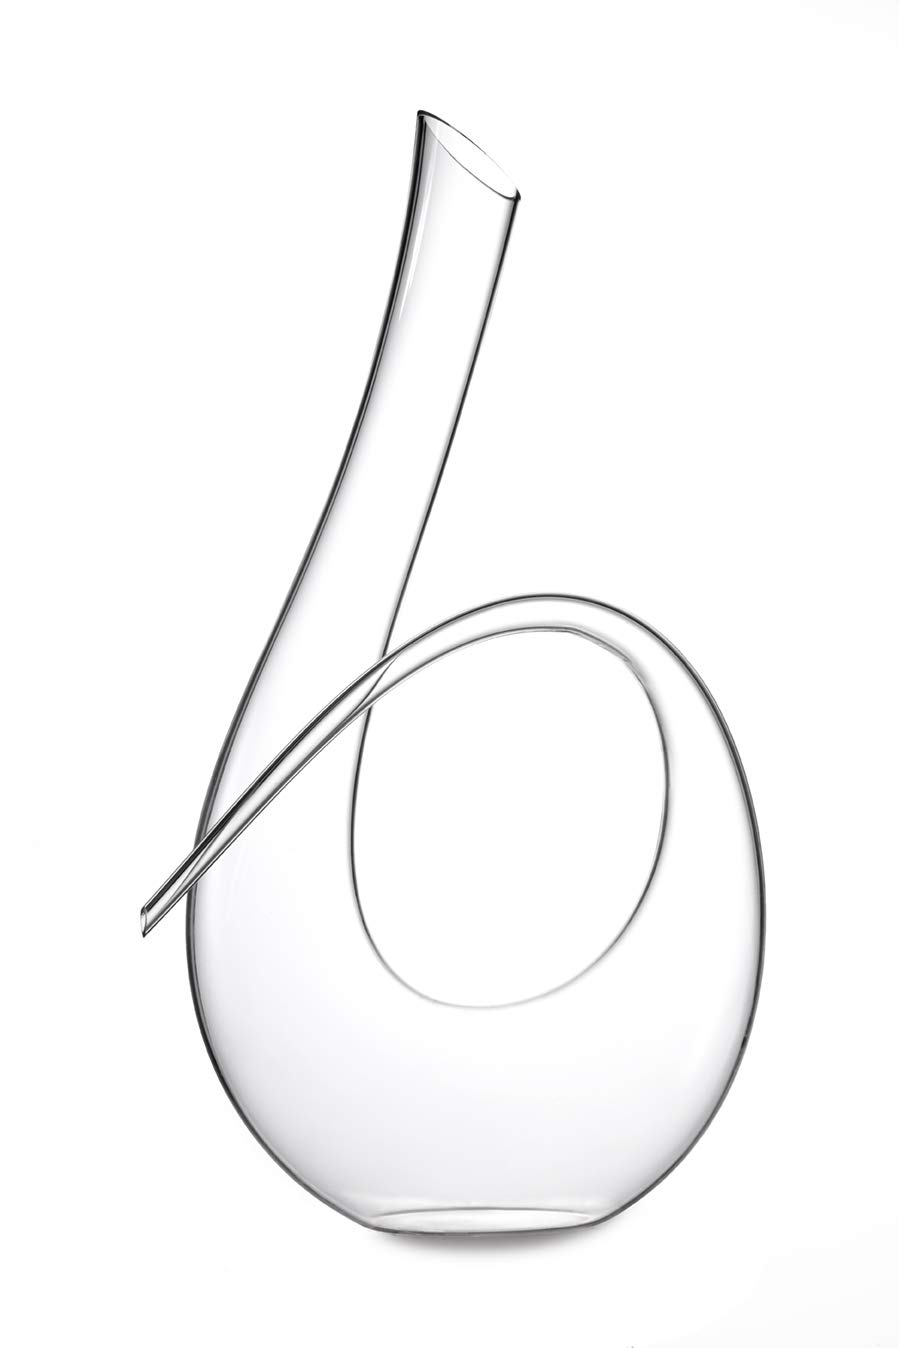 Twisted Horn Wine Decanter Lead Free Crystal Wine Aerating Decanter that Holds 35oz. (1 Liter) (Twisted Horn Decanter)